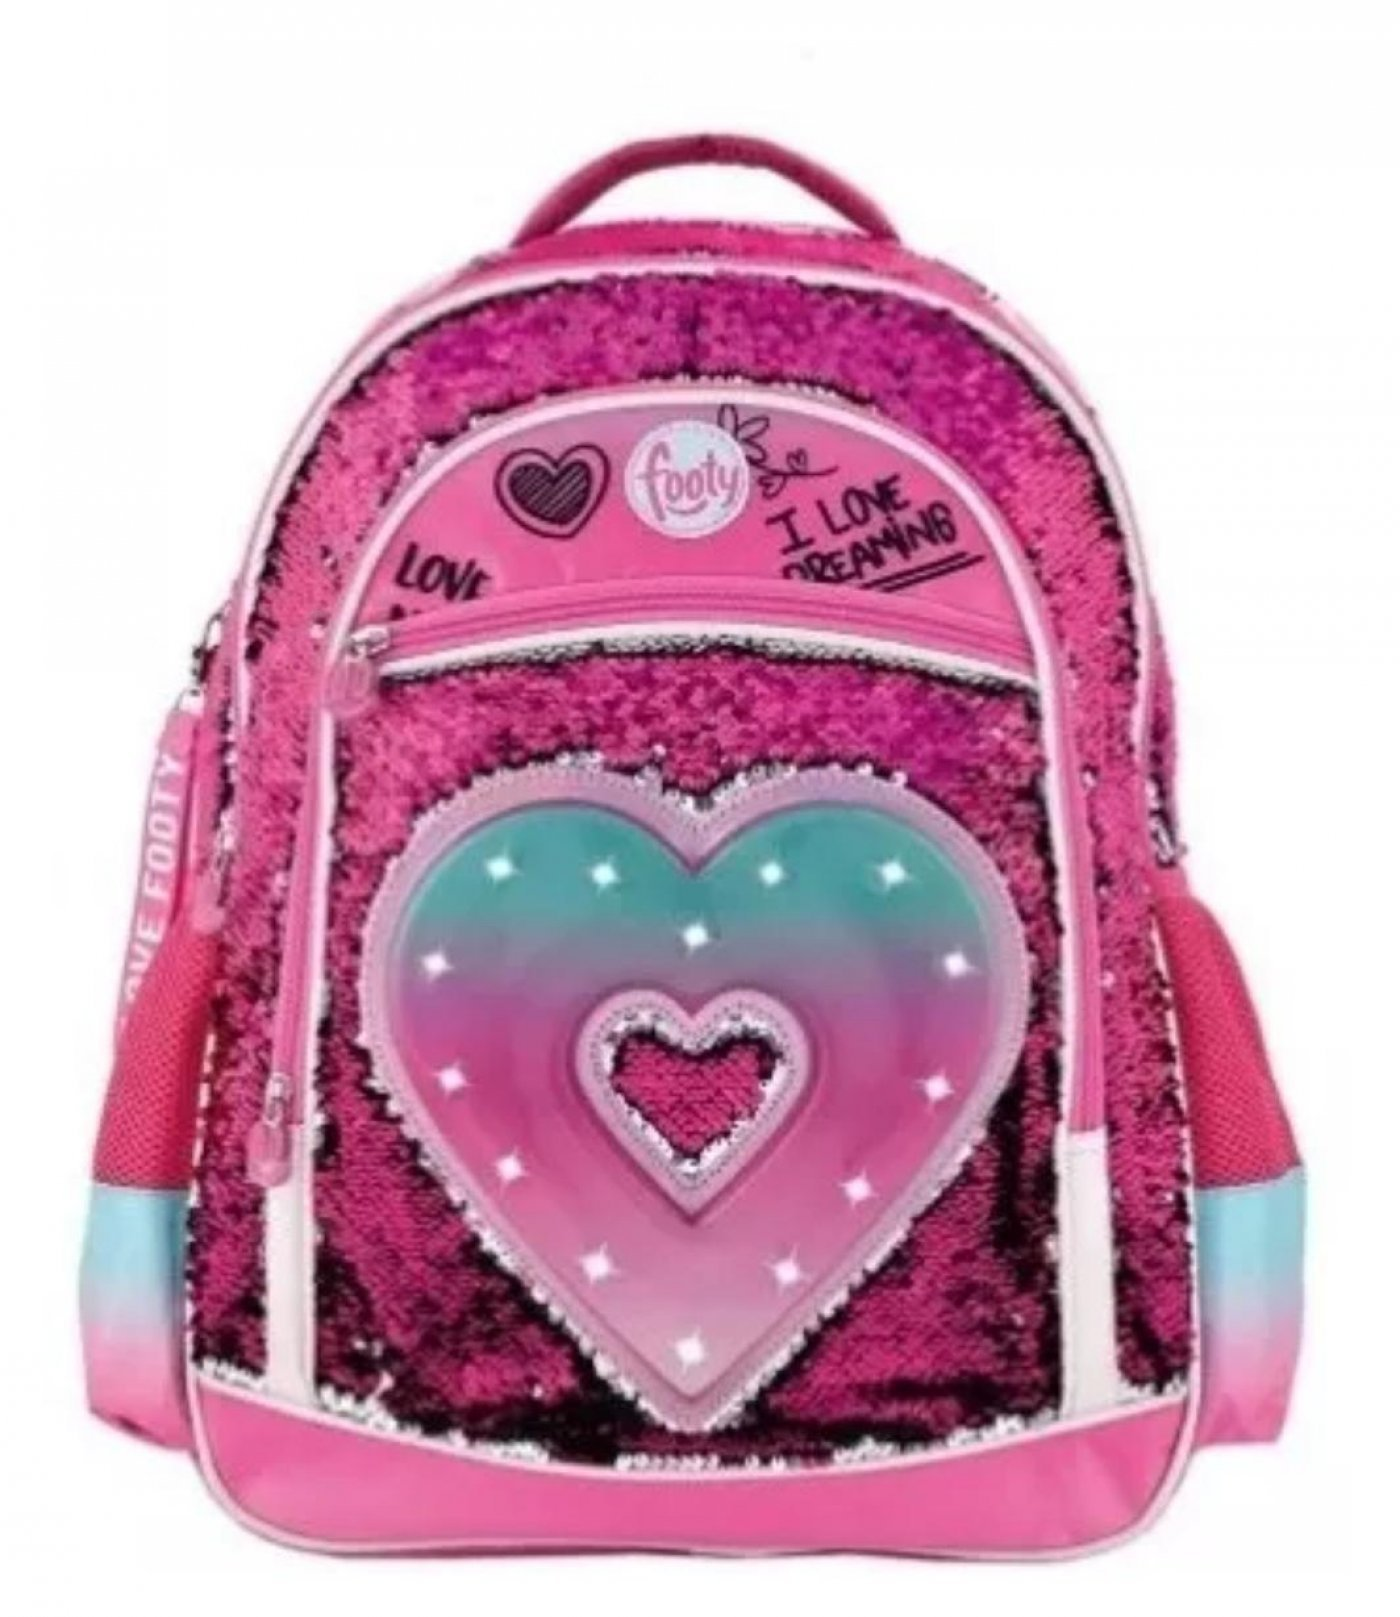 Mochila Footy Corazon Luminoso